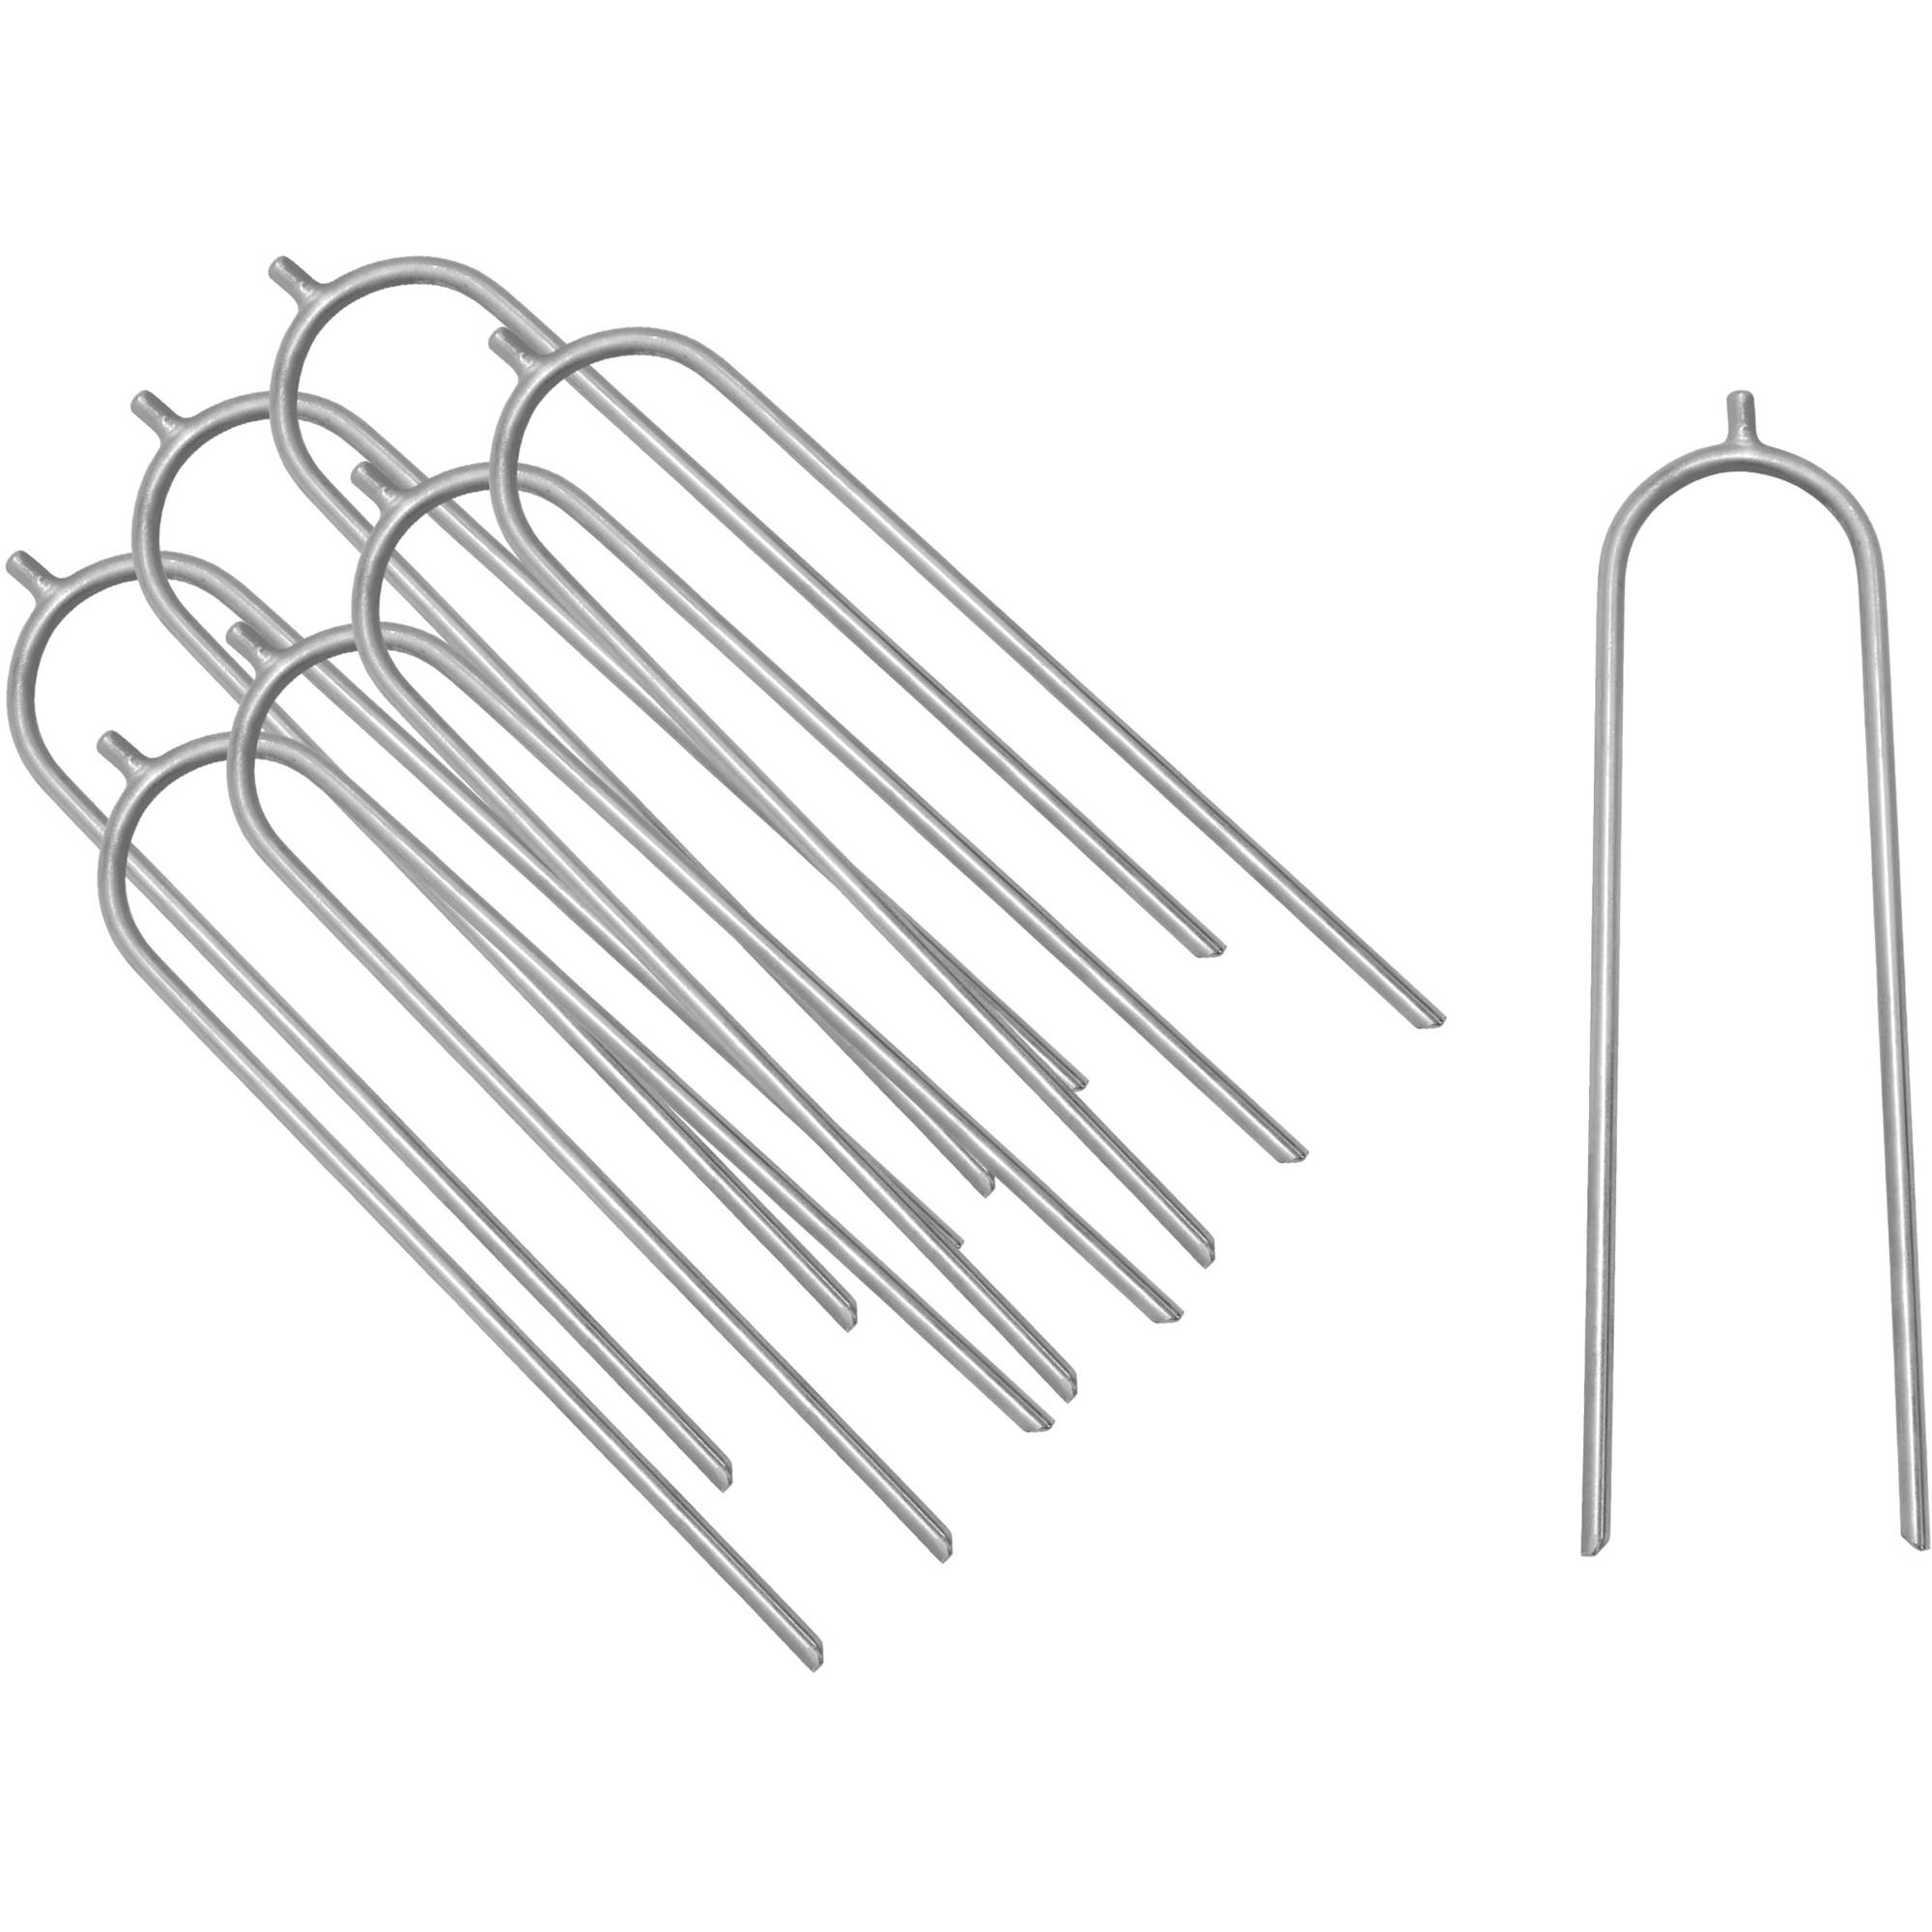 Upper Bounce Trampoline Wind Guard Anchors, Set of 8